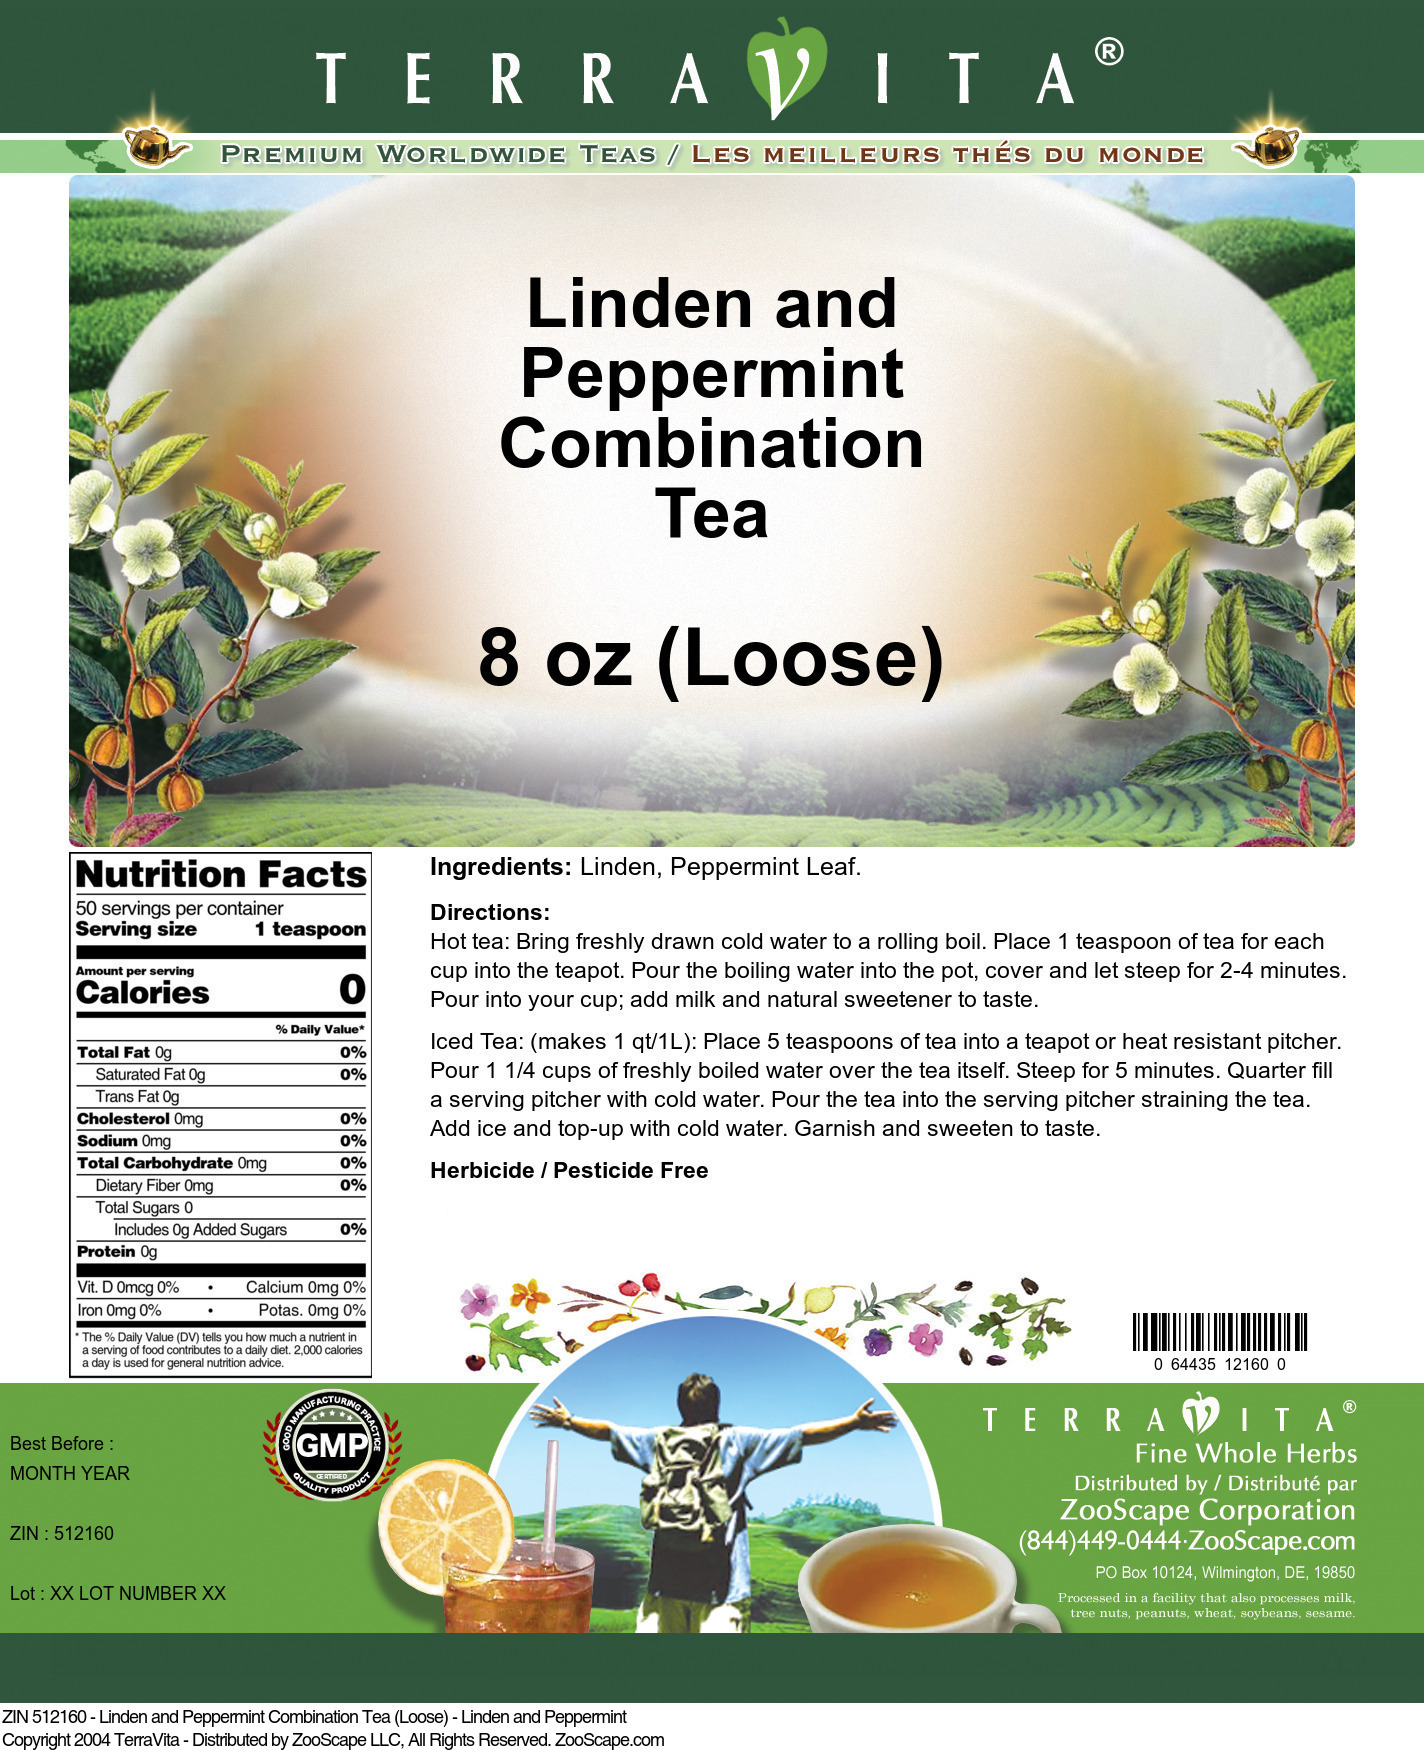 Linden and Peppermint Combination